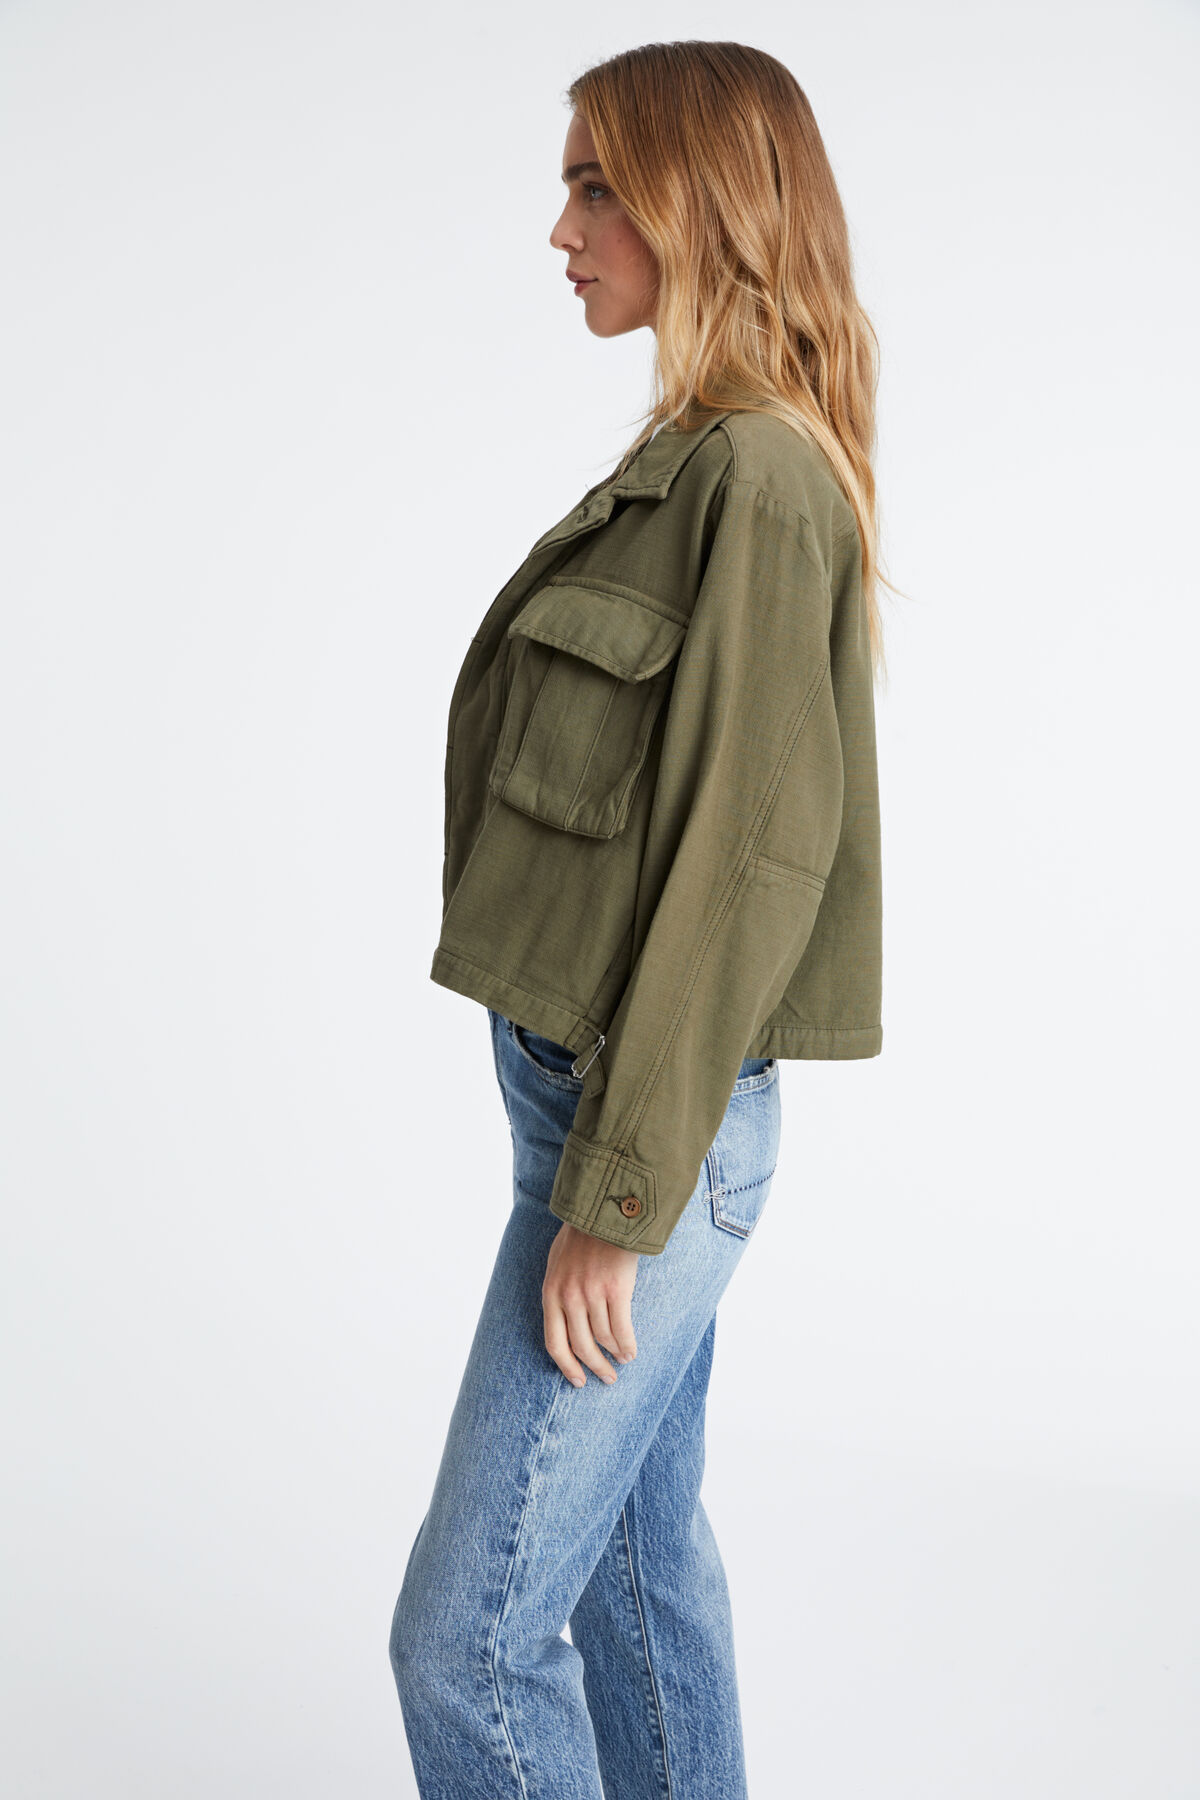 GIBBONS JACKET Cropped seasonal jacket - Relaxed Fit